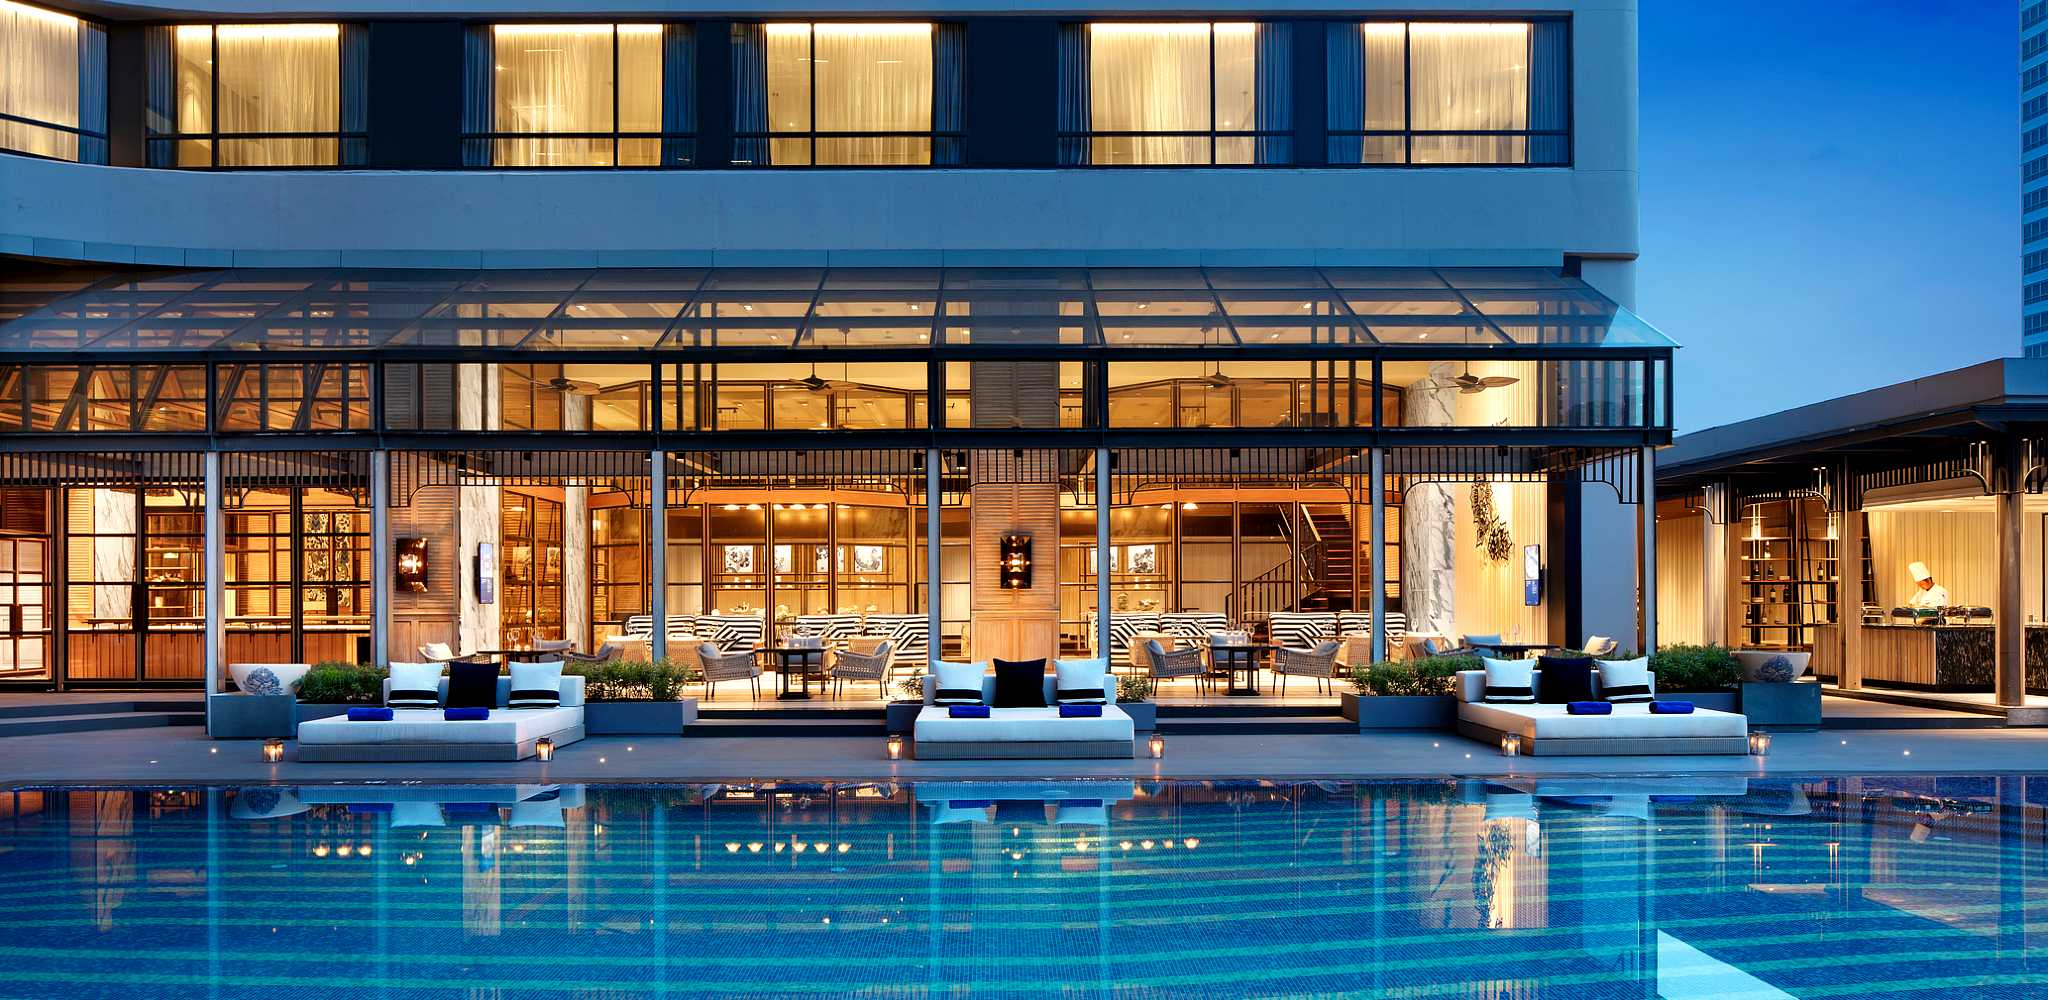 the pool of the Marriott Marquise Bangkok